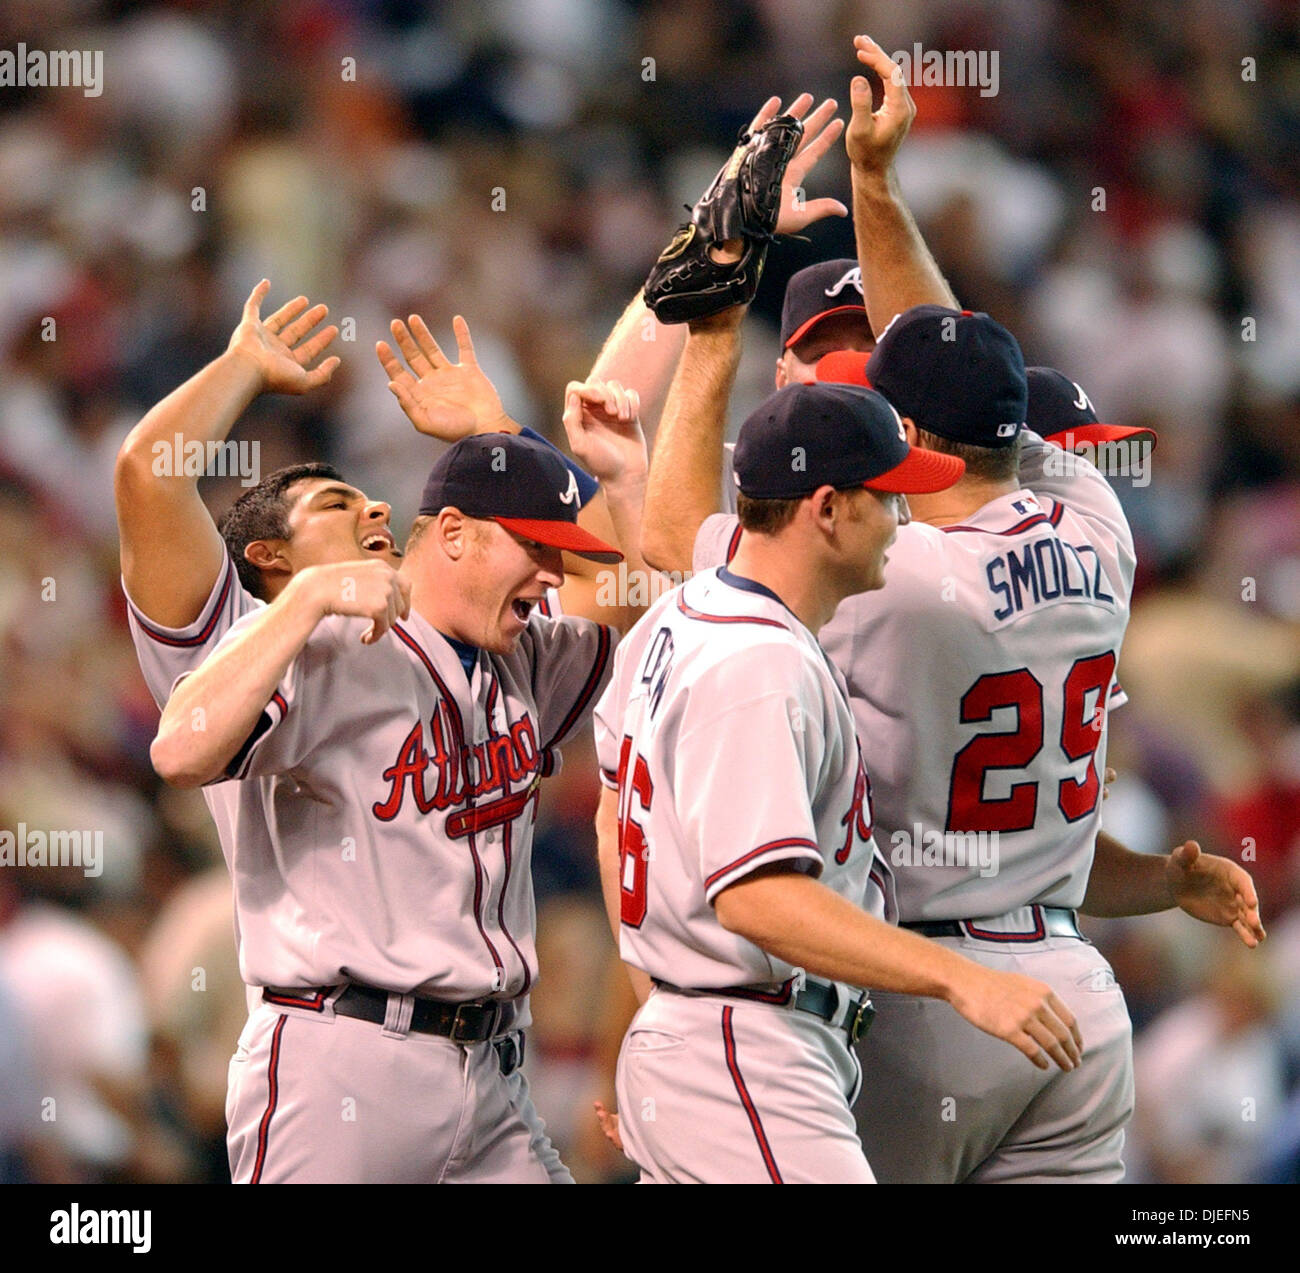 Oct 10, 2004; Houston, TX, USA; MLB Baseball: Atlanta Braves players run on the field as they celebrate their win at Minute Maid Park in Houston. The Braves tied the National League Divison Series at 2-2. - Stock Image